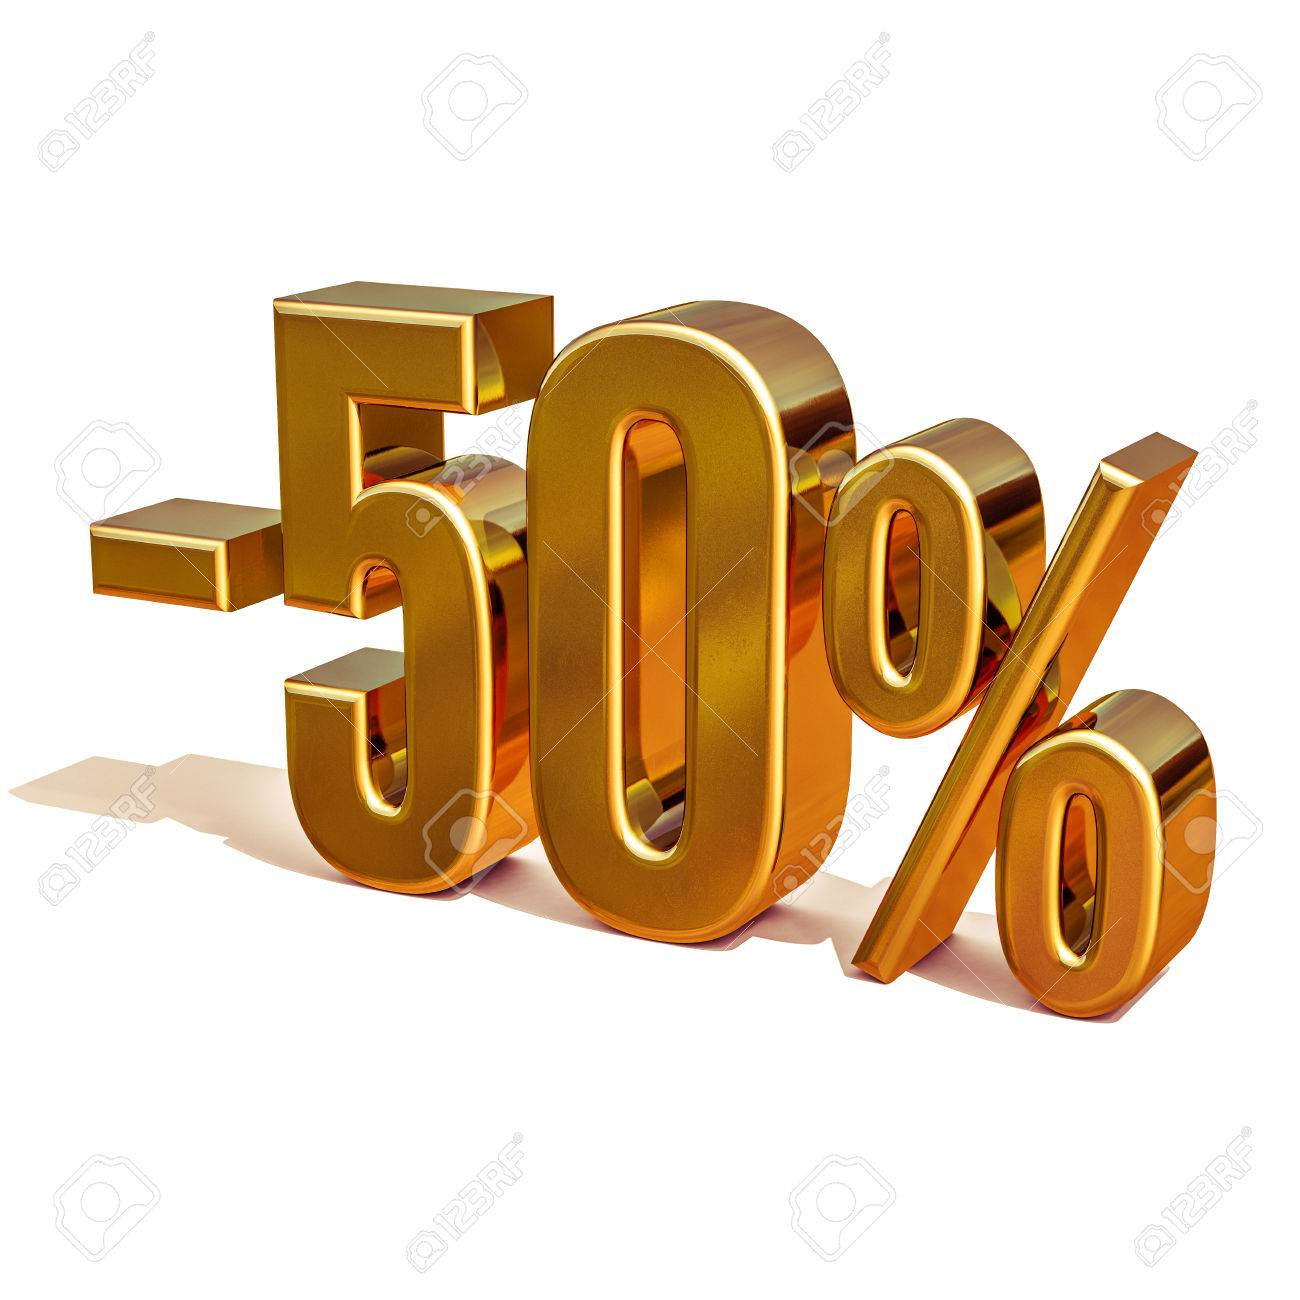 Gold Sale 50 Gold Percent Off Discount Sign Sale Banner Template